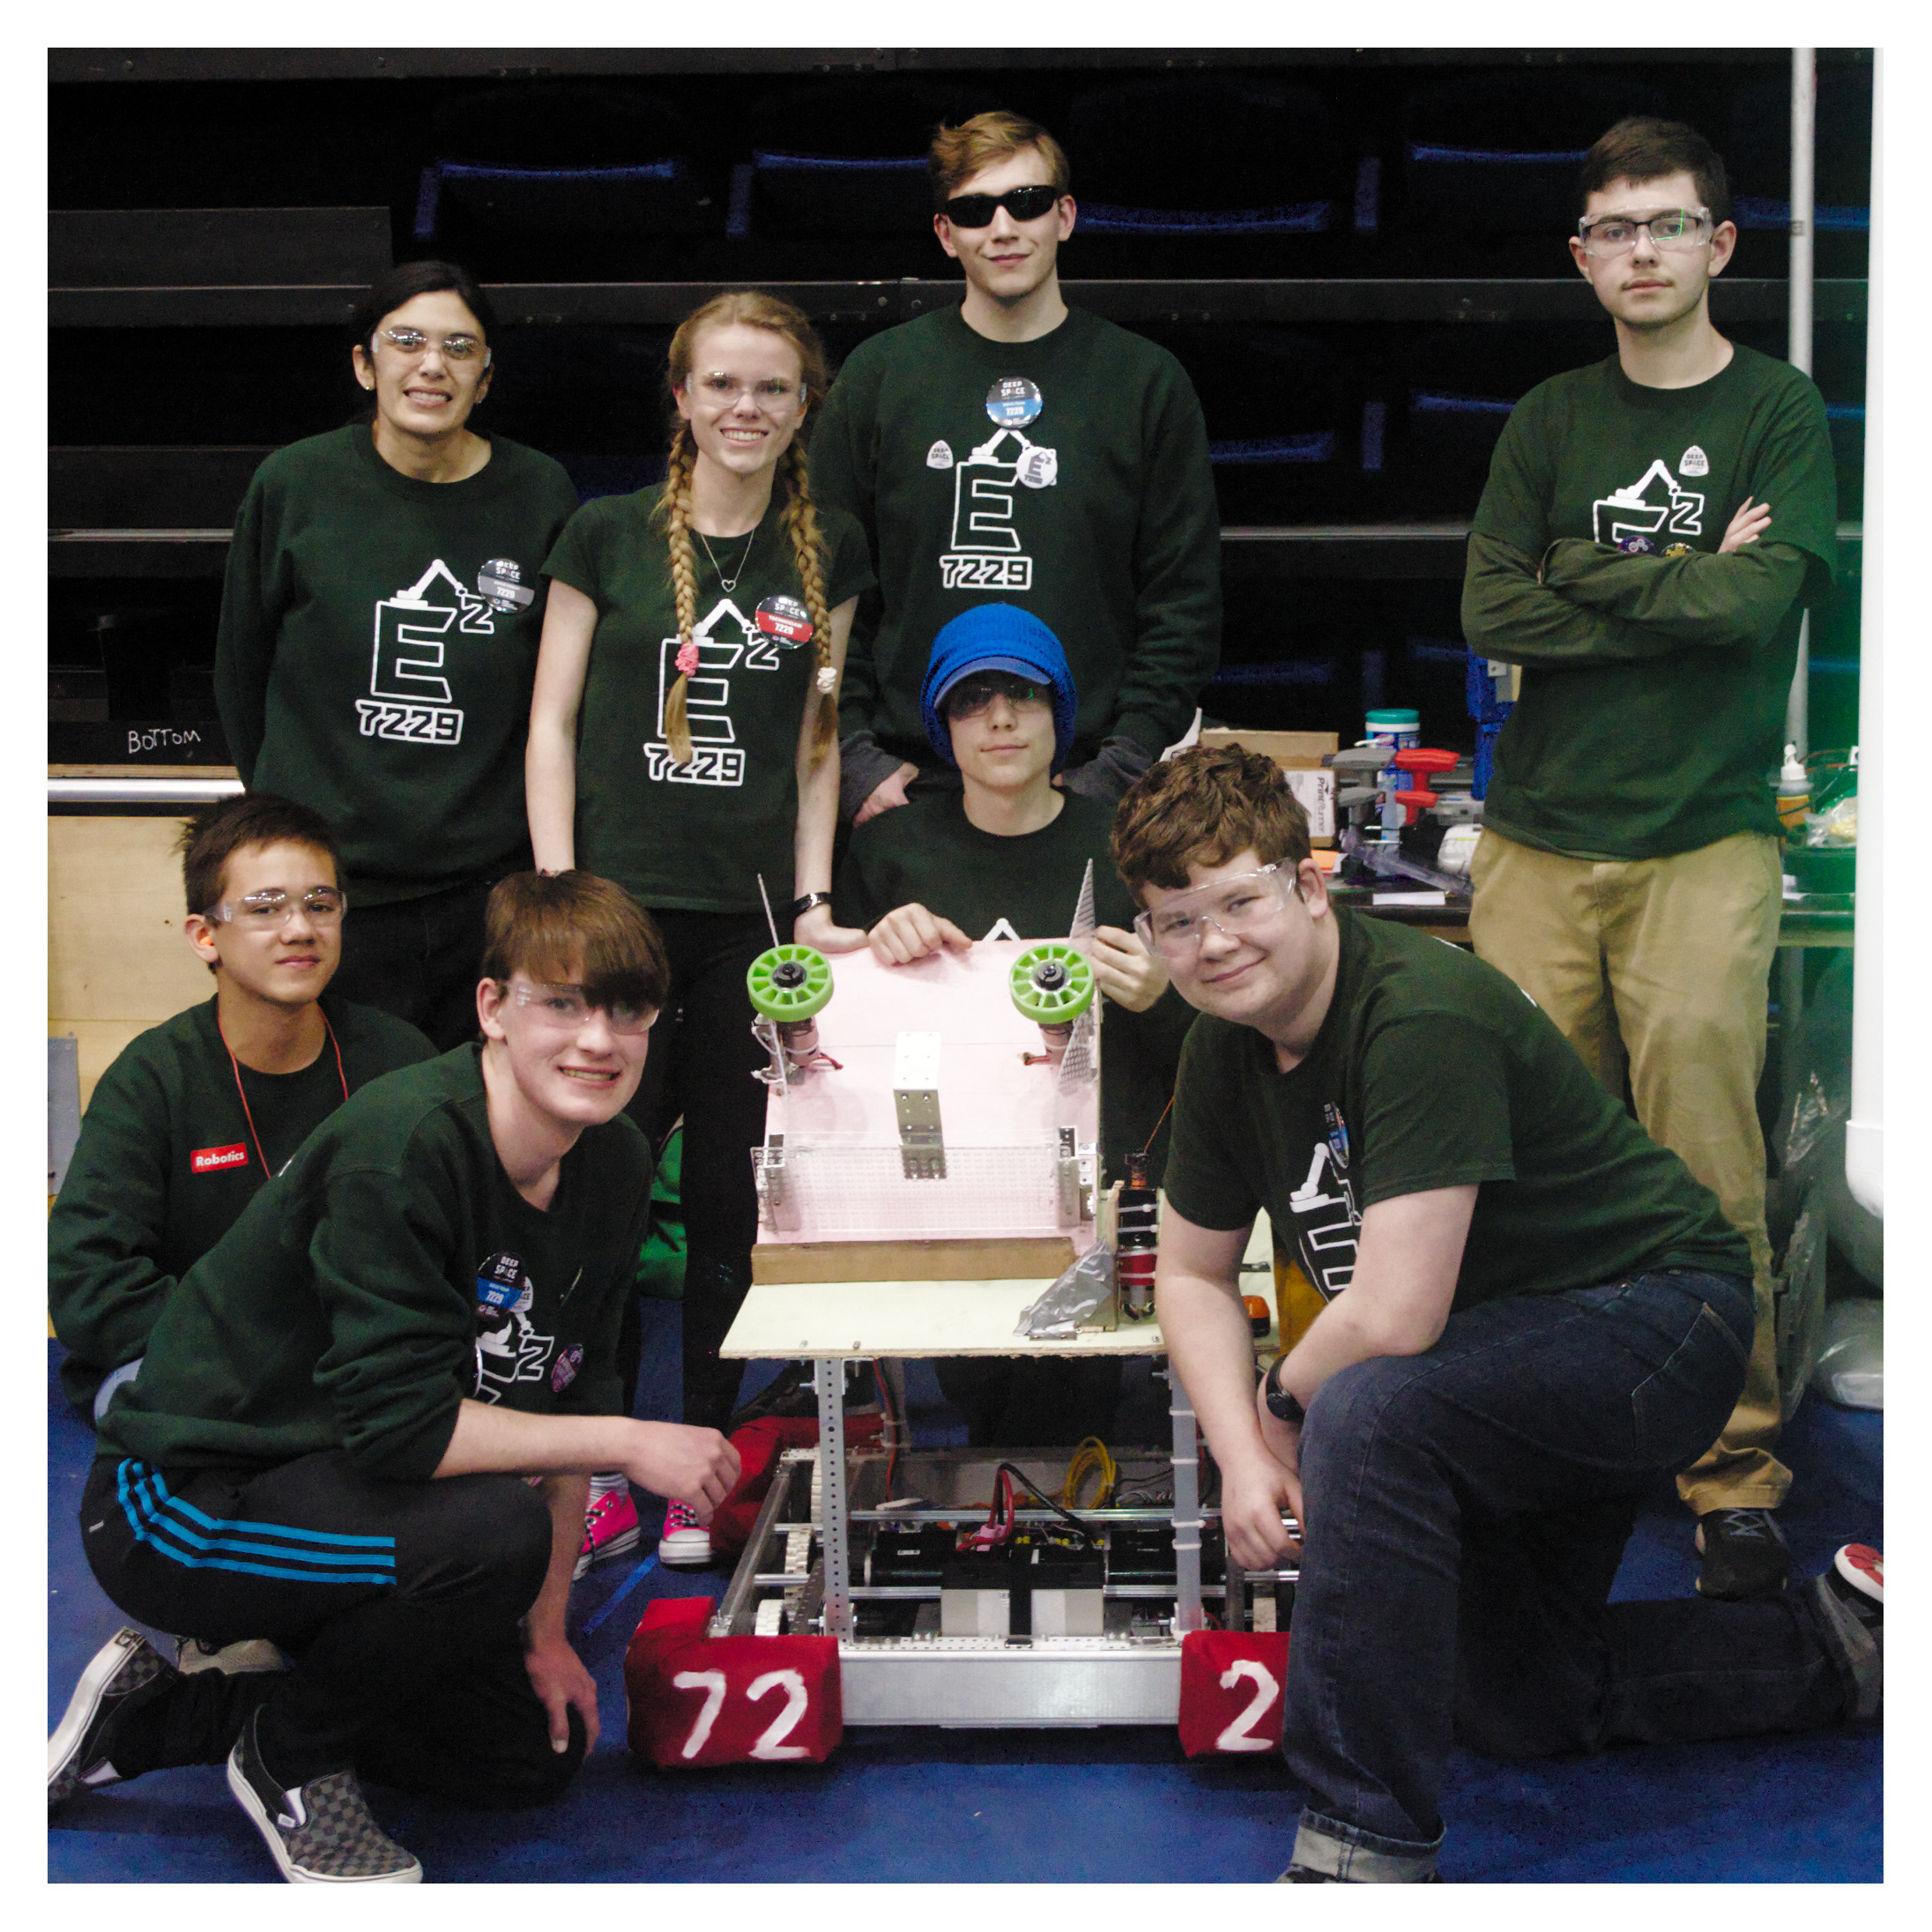 The ECHS Robotics team competed at UC Davis. They built a robot in six weeks